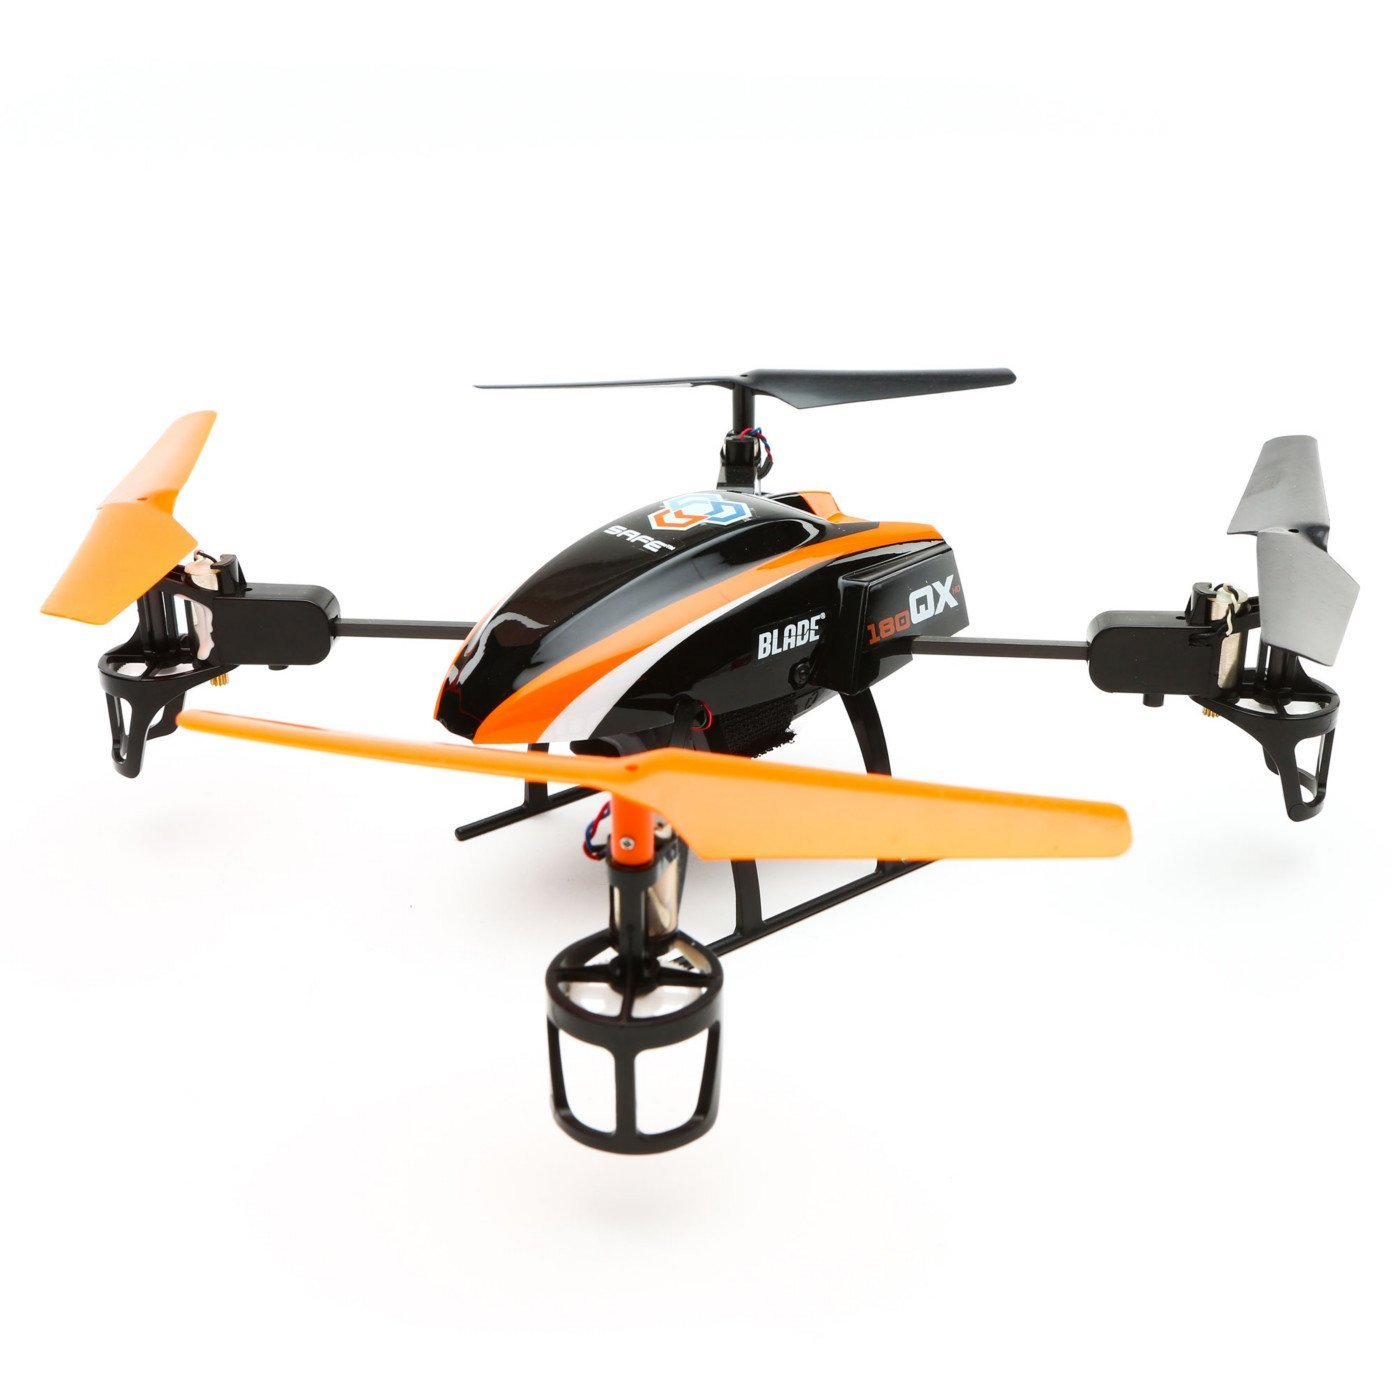 Blade 180 QX HD Ready To Fly Quad-Copter with E-Flite EFC-721 Camera, SAFE Technology Multi-Colored